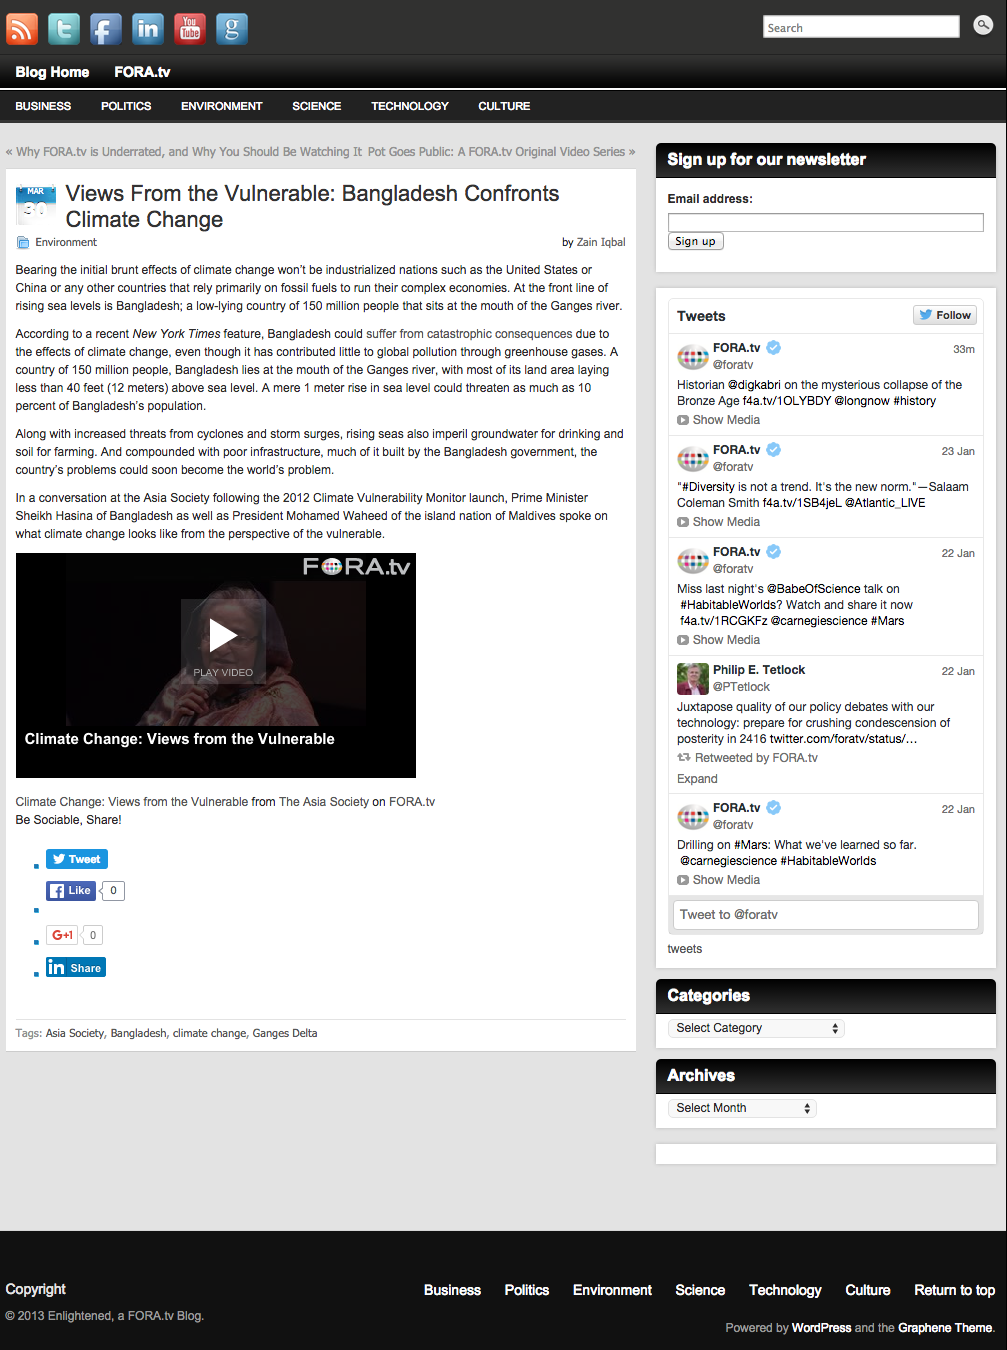 screencapture-enarchive-fora-tv-2014-03-views-from-the-vulnerable-bangladesh-confronts-climate-change.png